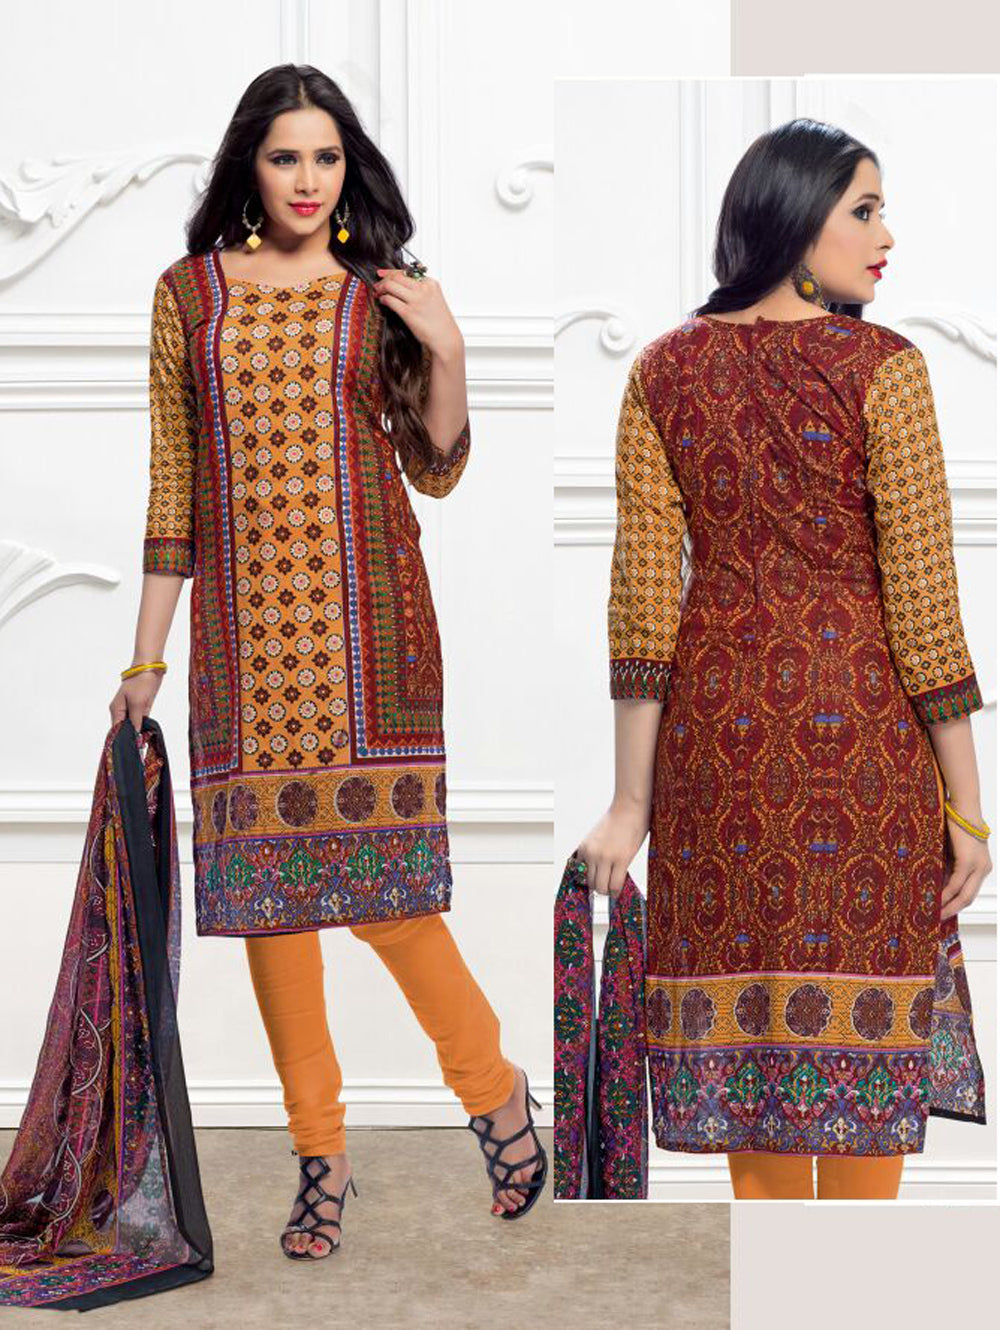 Orange and Multicolour Printed Pure Cotton Party Wear Pakistani Style Indian Suit